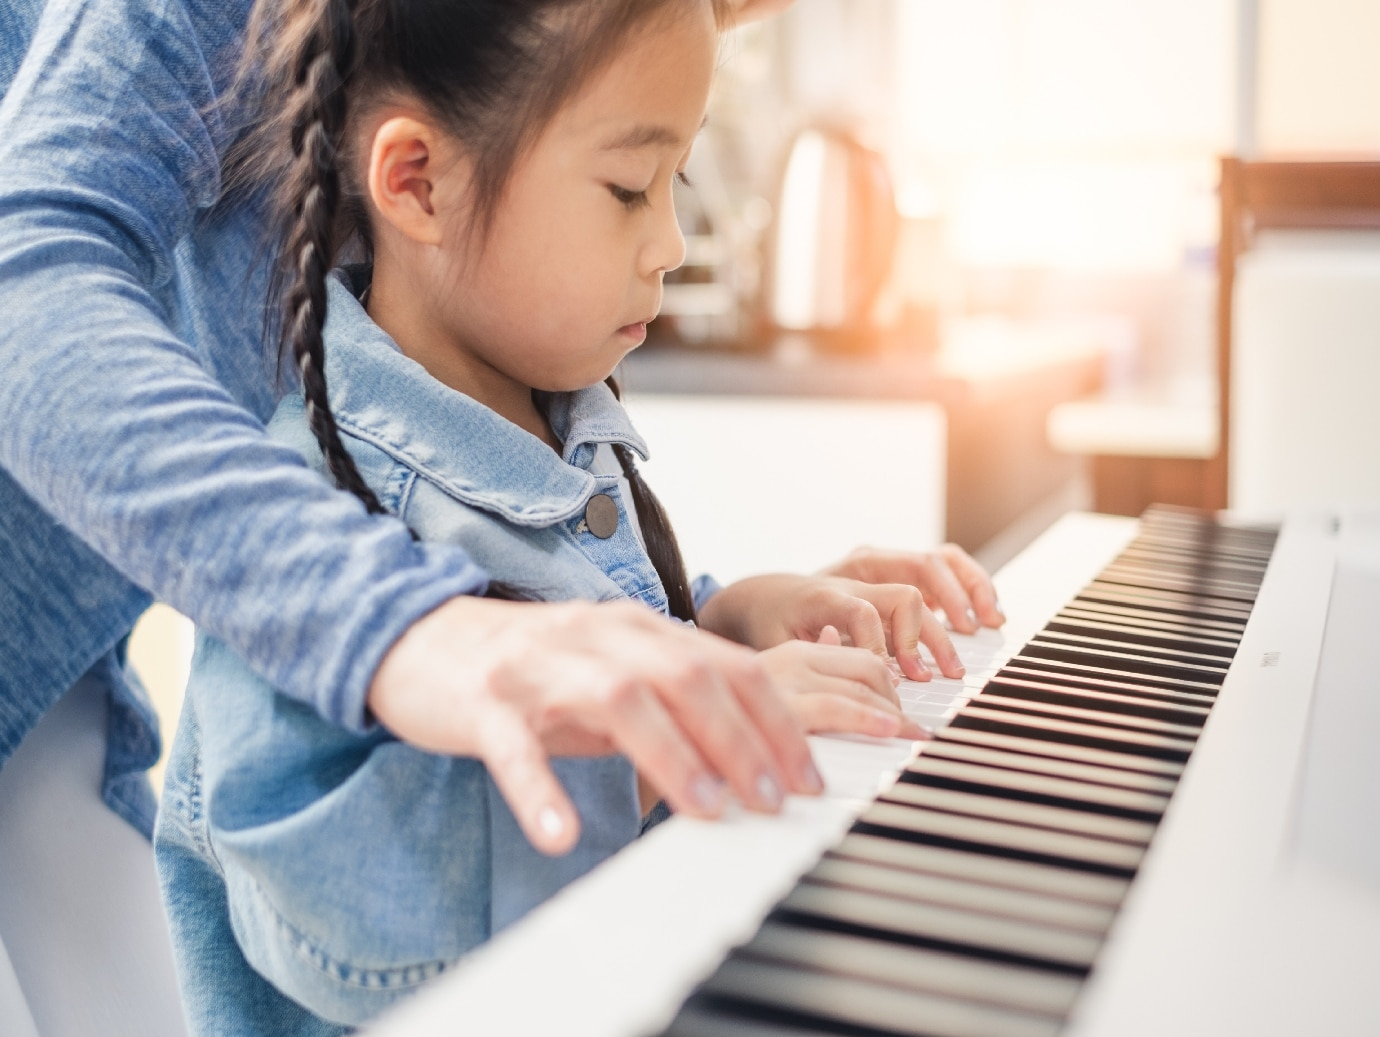 Young girl learns how to play piano in home that uses a YORK Steam Humidifier for improved air quality.